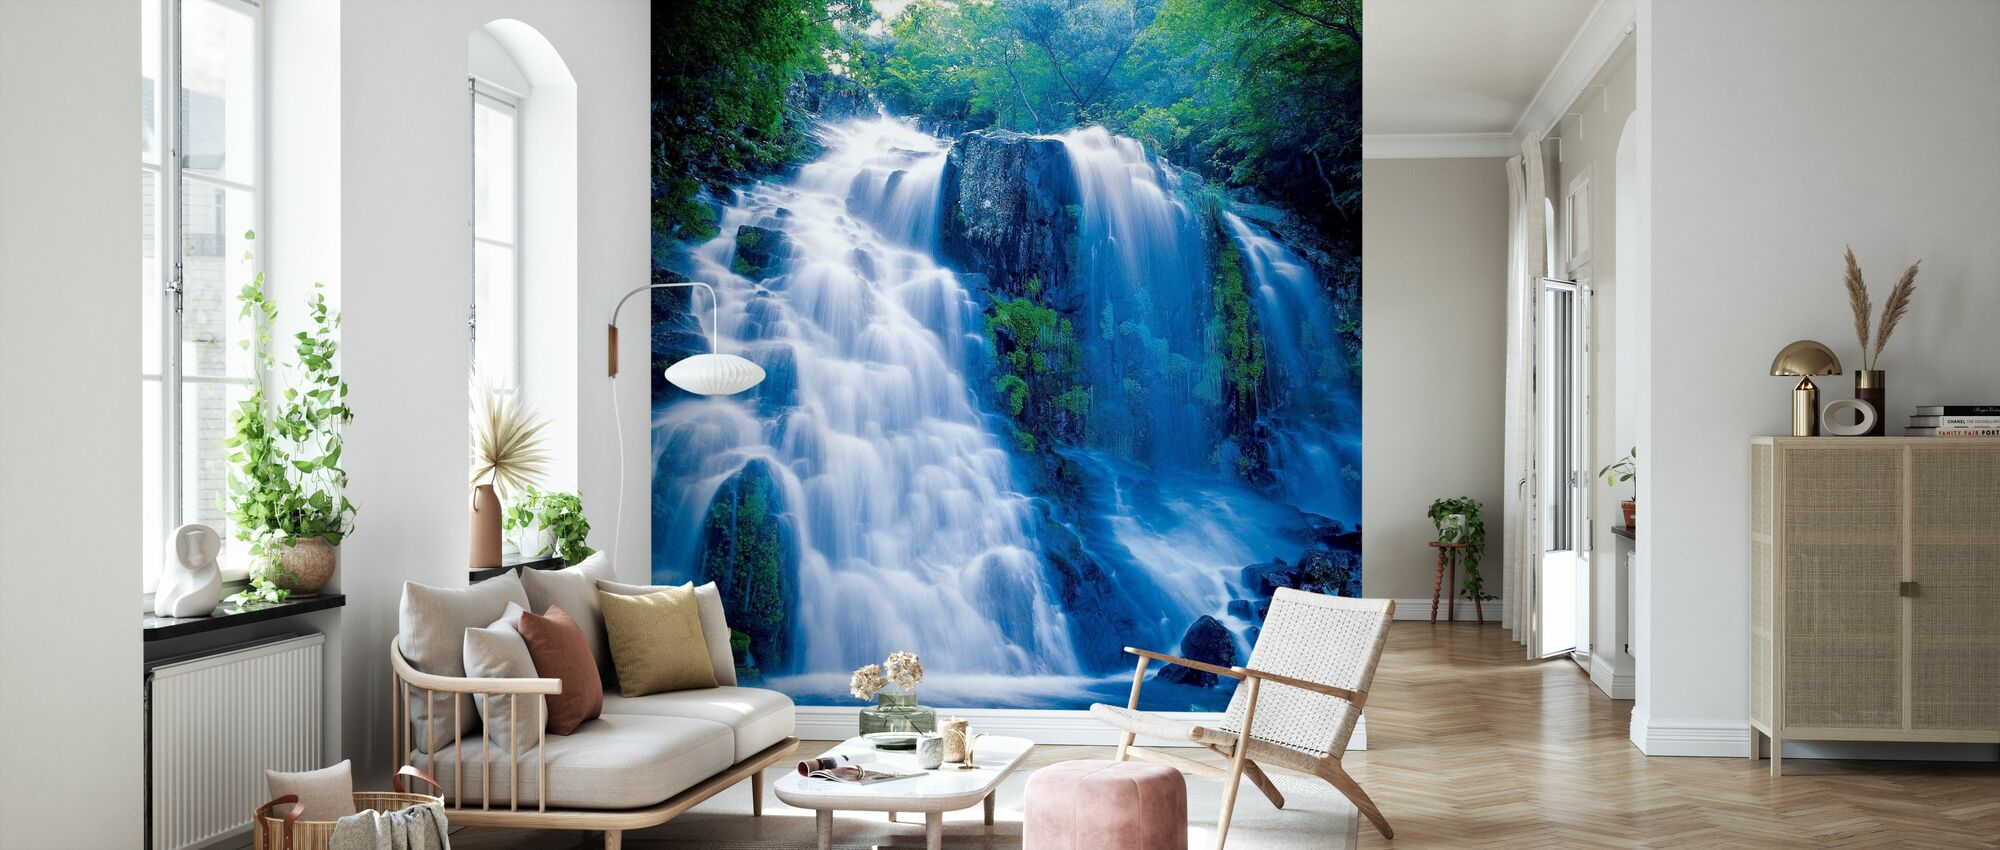 Nature Scenery - Wallpaper - Living Room